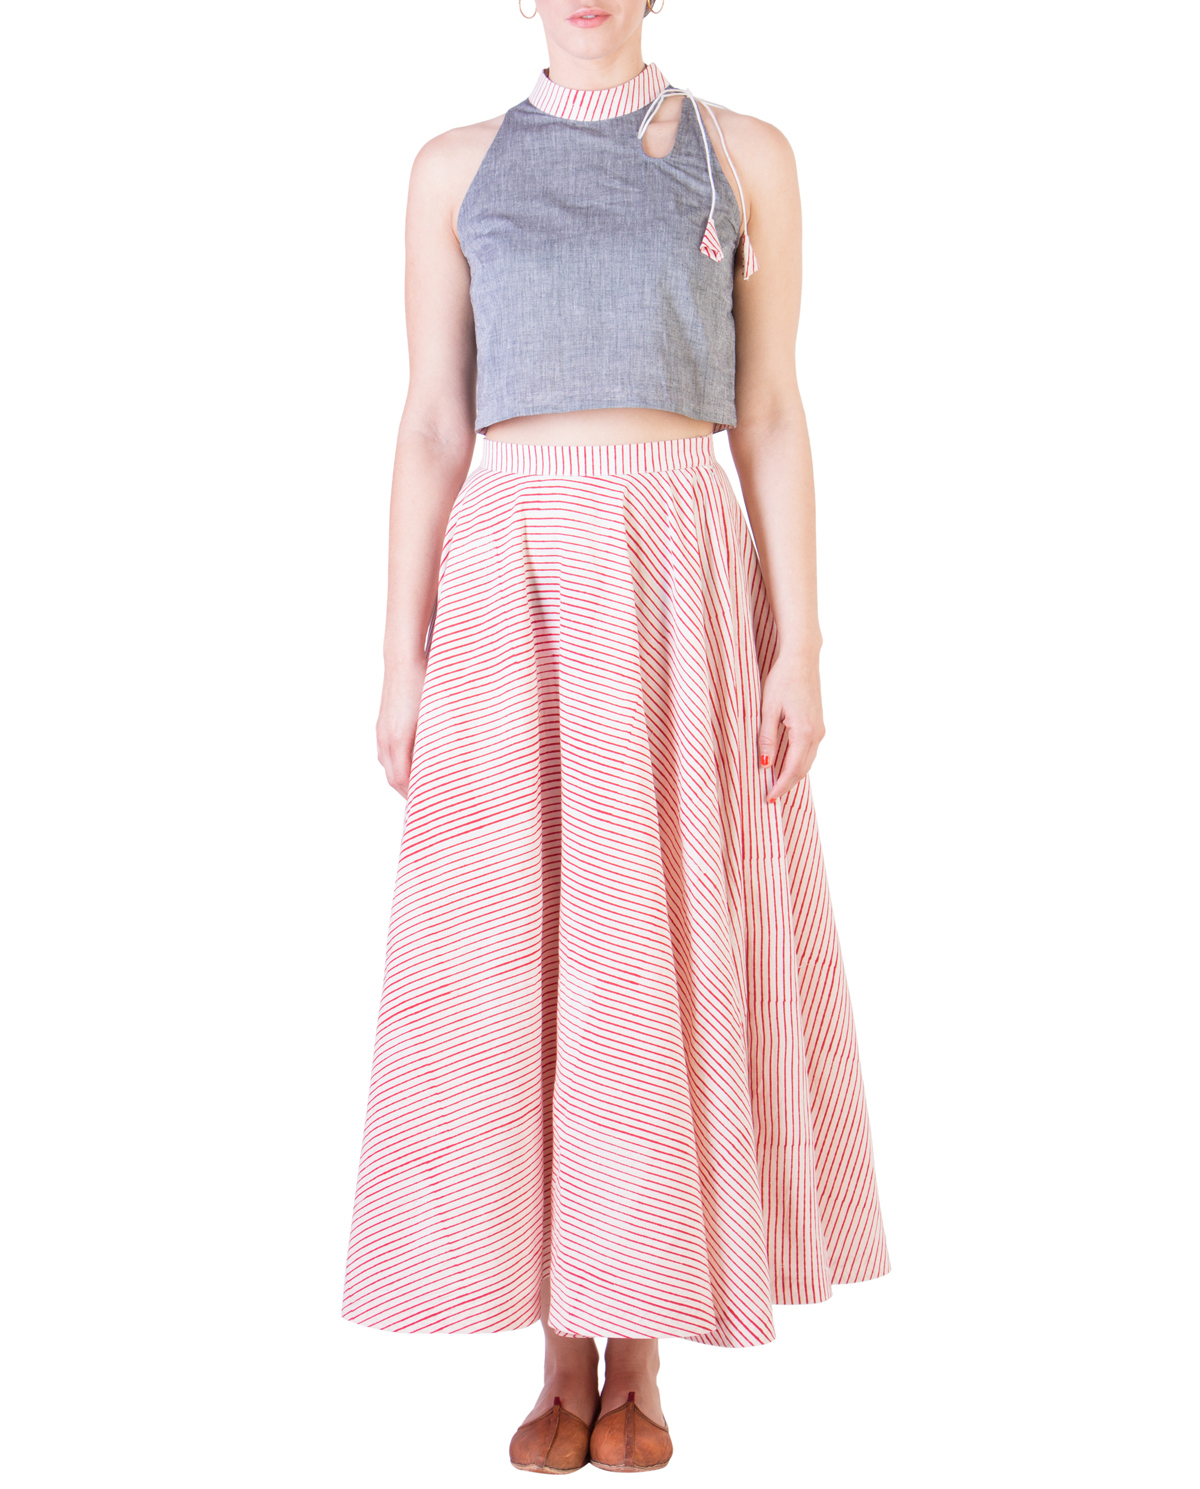 Grey mangalgiri crop top and muslin skirt with red stripes